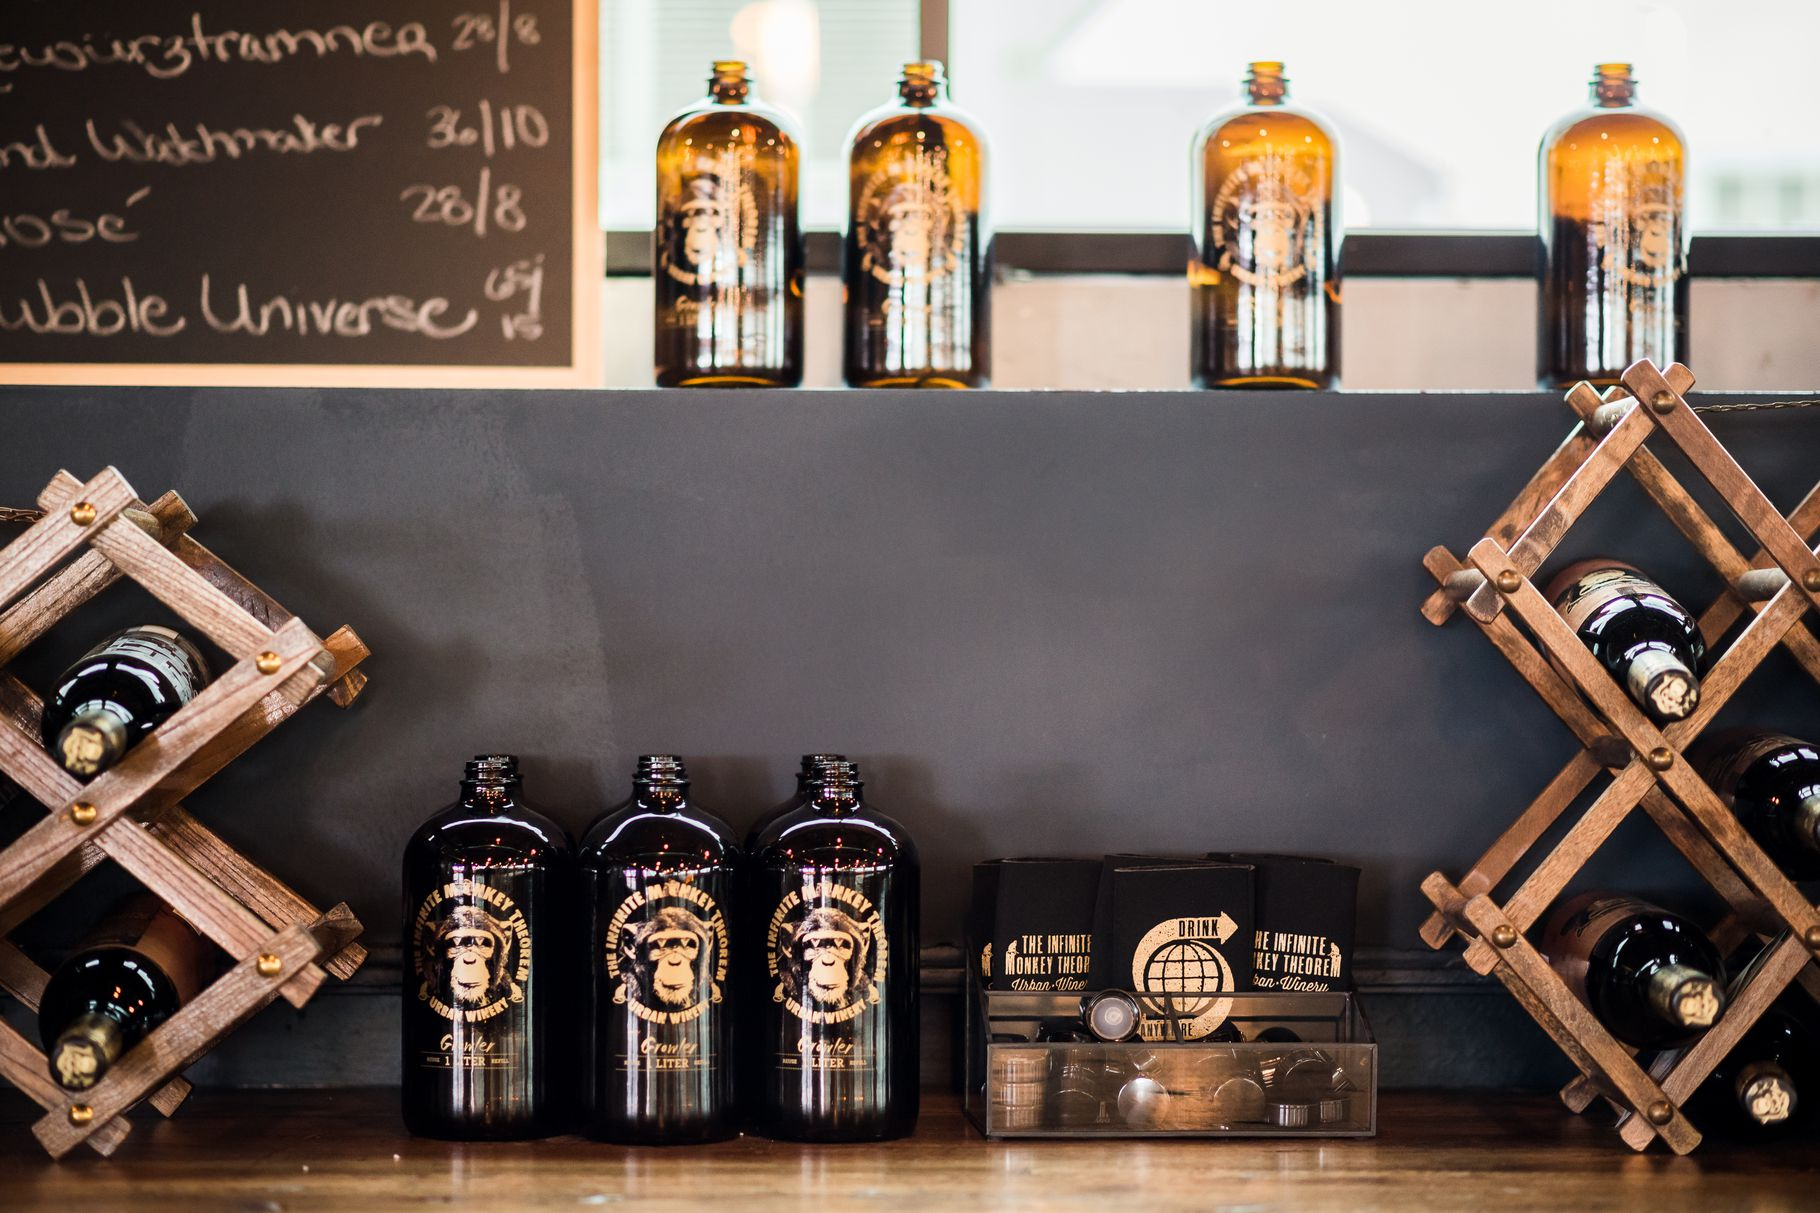 A photo of several wine growlers on a countertop at Infinite Monkey Theorem with a menu board partially visible behind them.